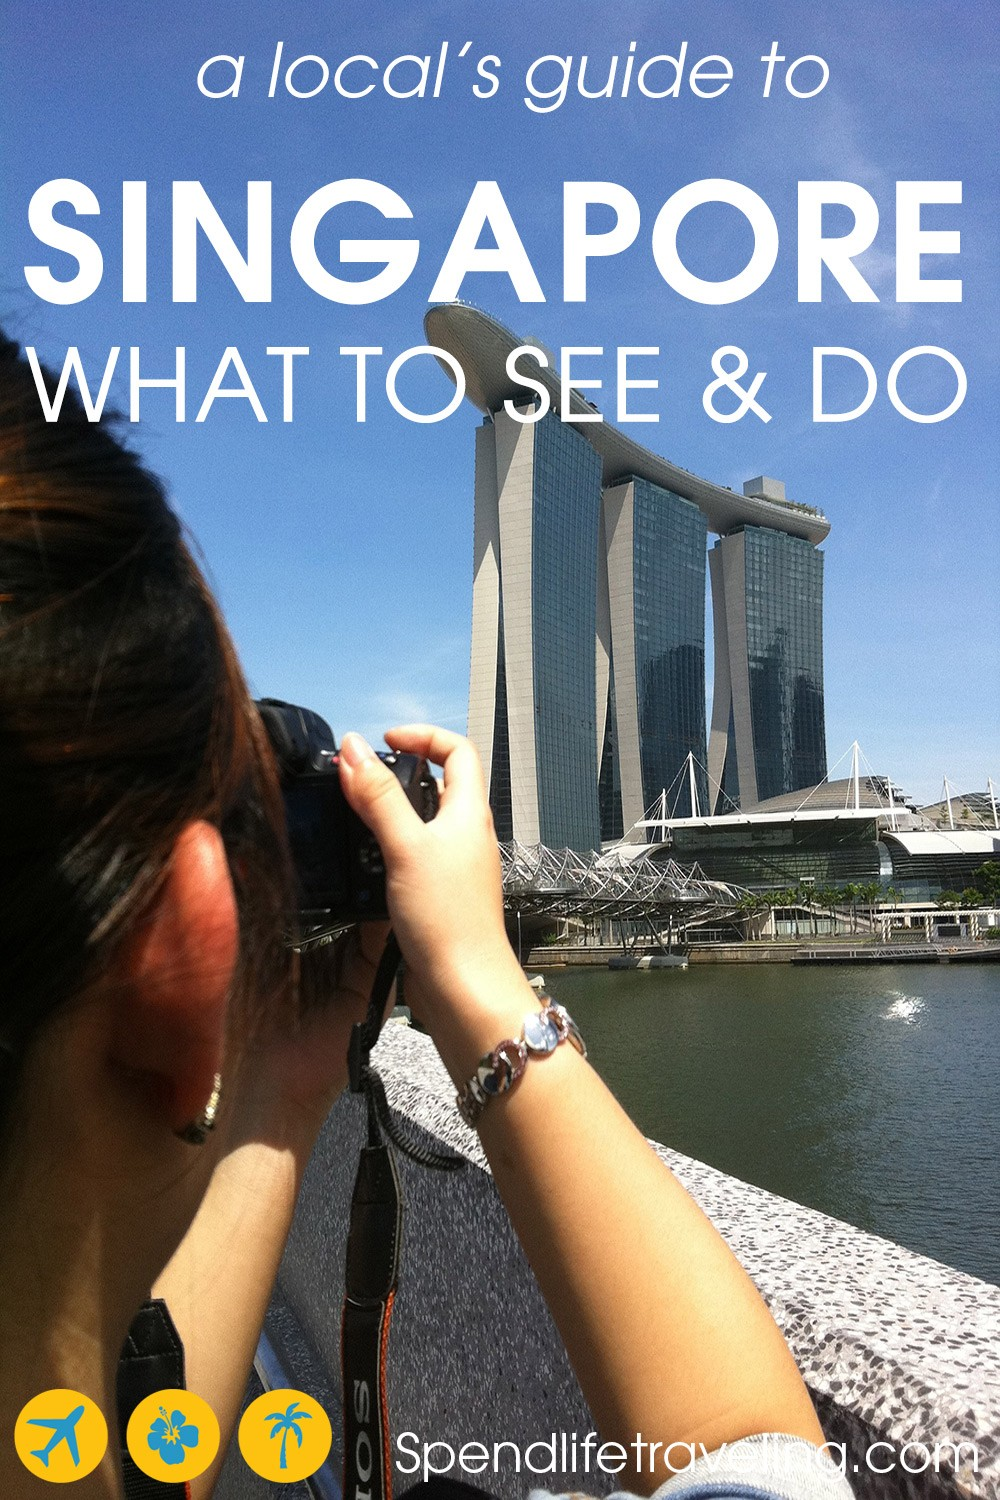 What to see, what to do & where to stay when traveling to Singapore. Tips from a local.